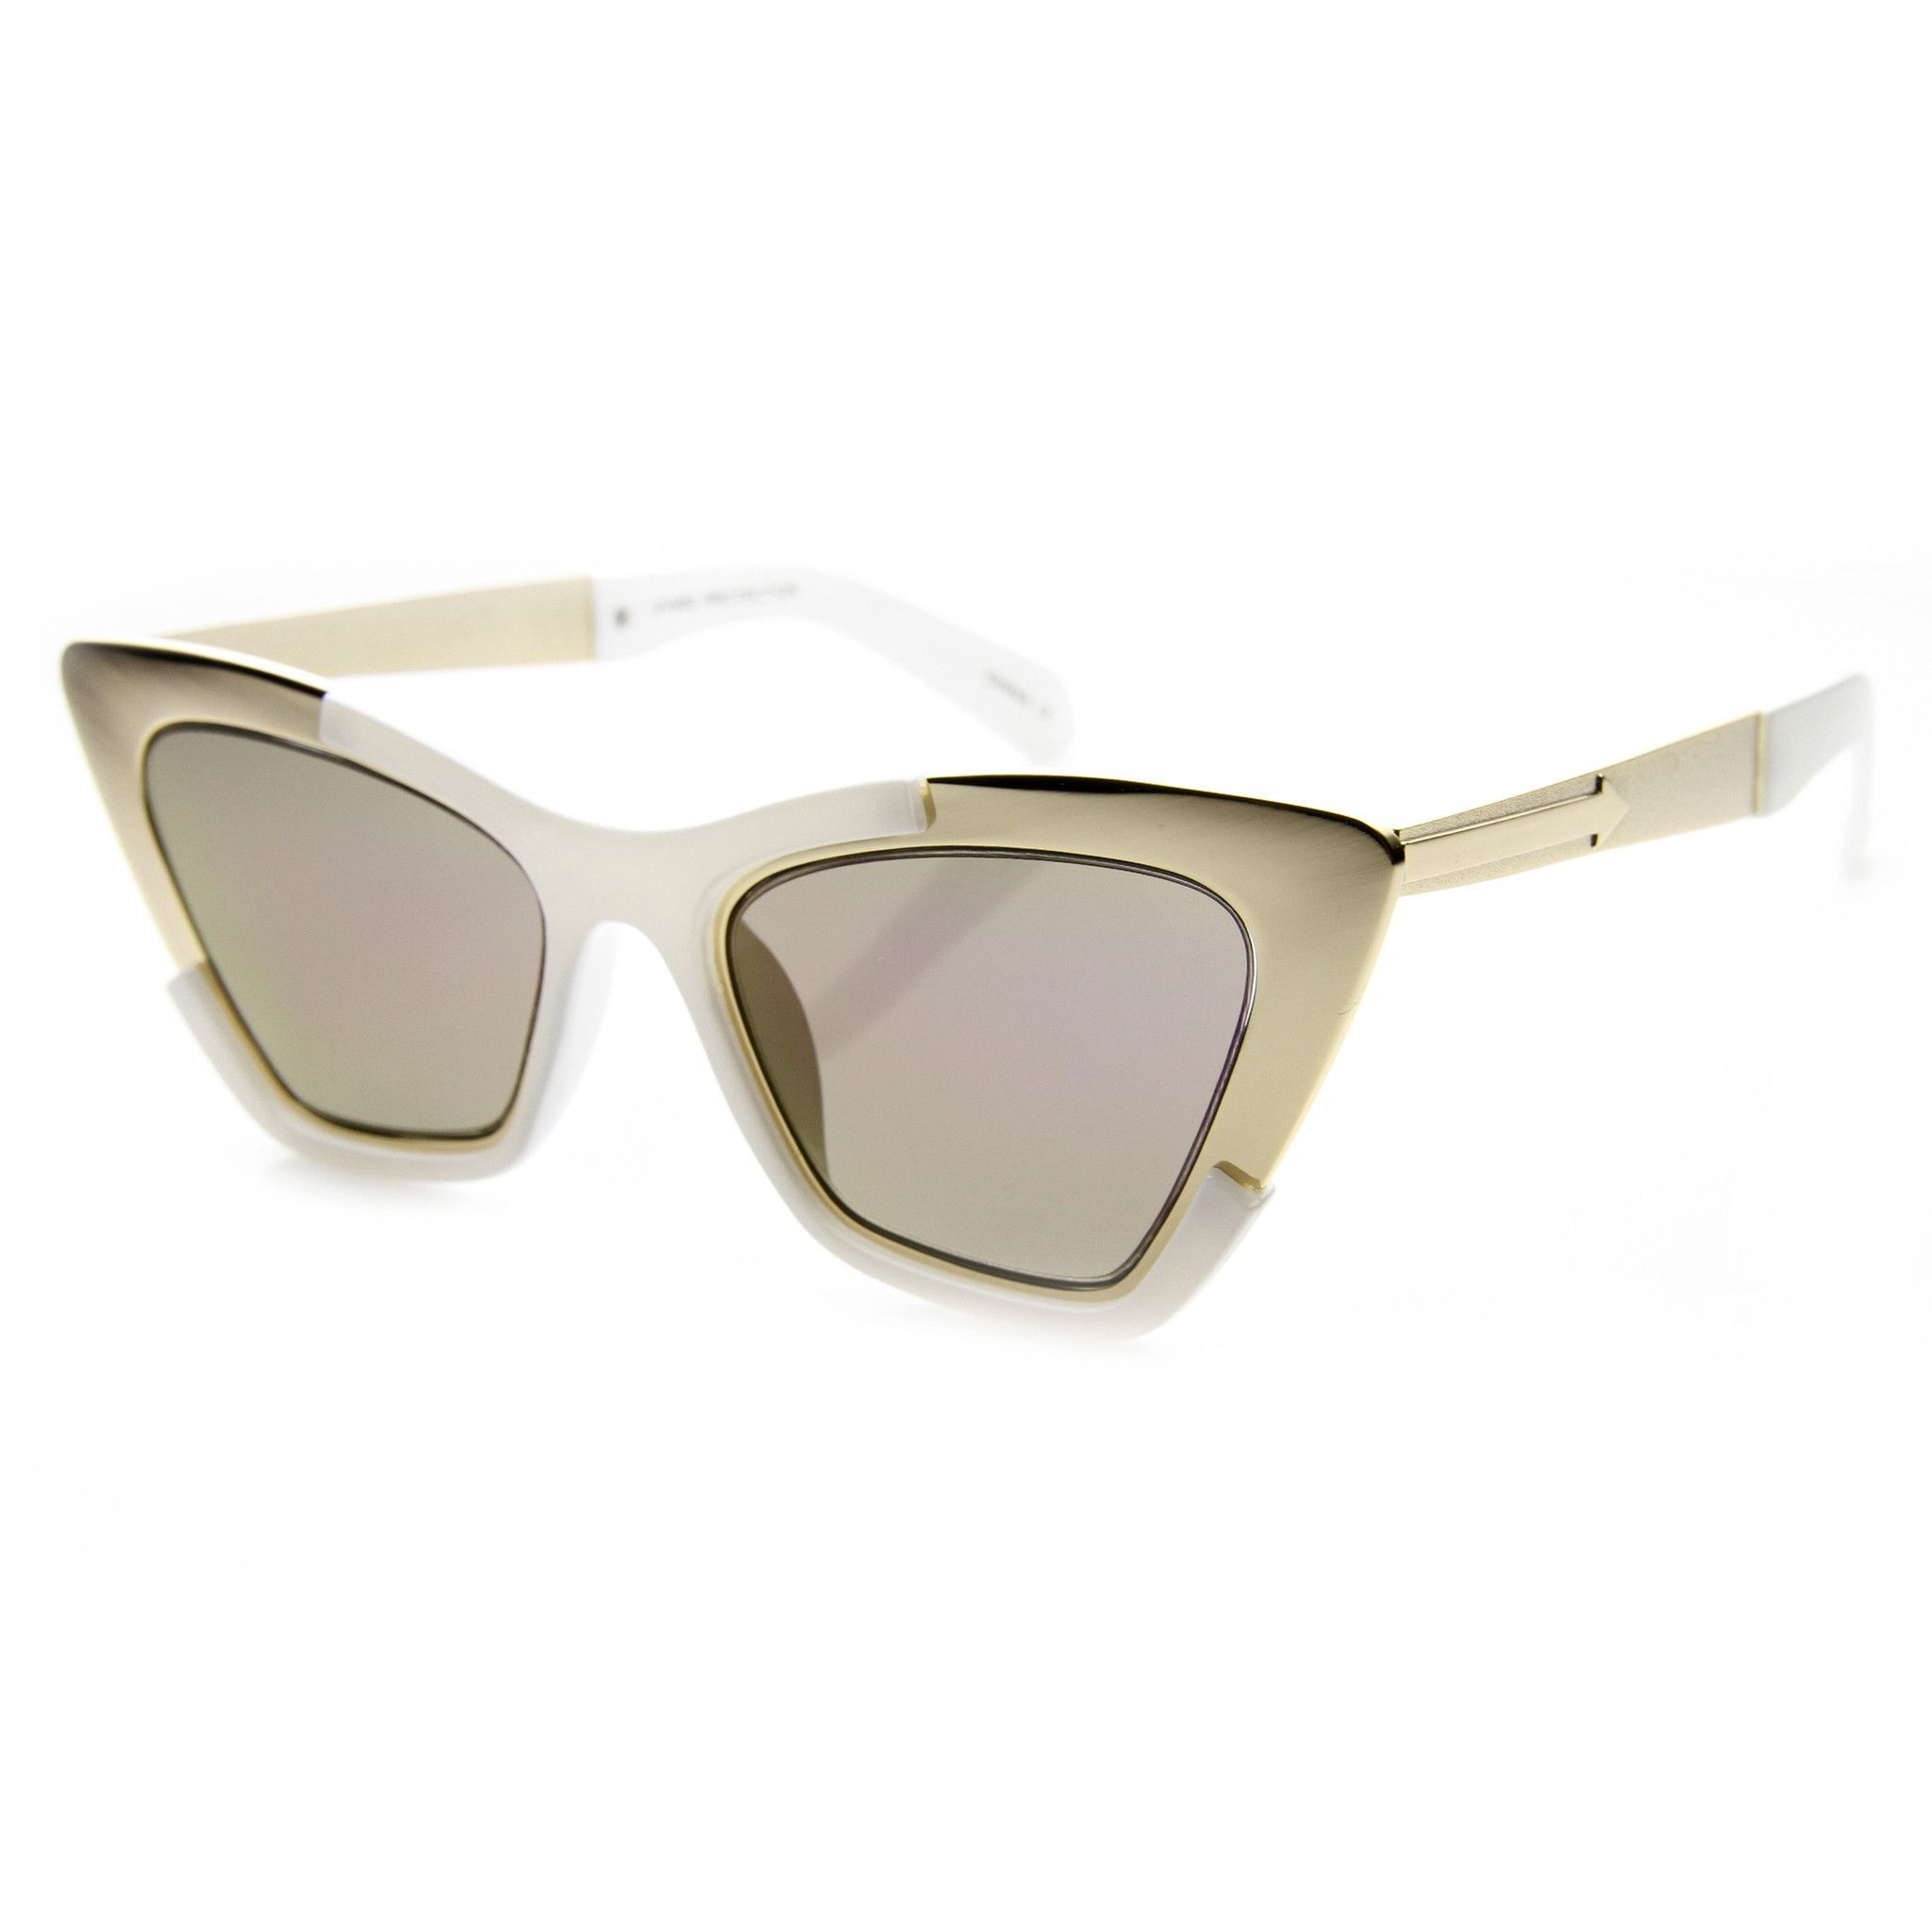 - Description - Measurements - Shipping - A dramatic and futuristic cat eye shape defines these stunning designer inspired sunnies. Add some dramatic high fashion appeal to your outfits this season in